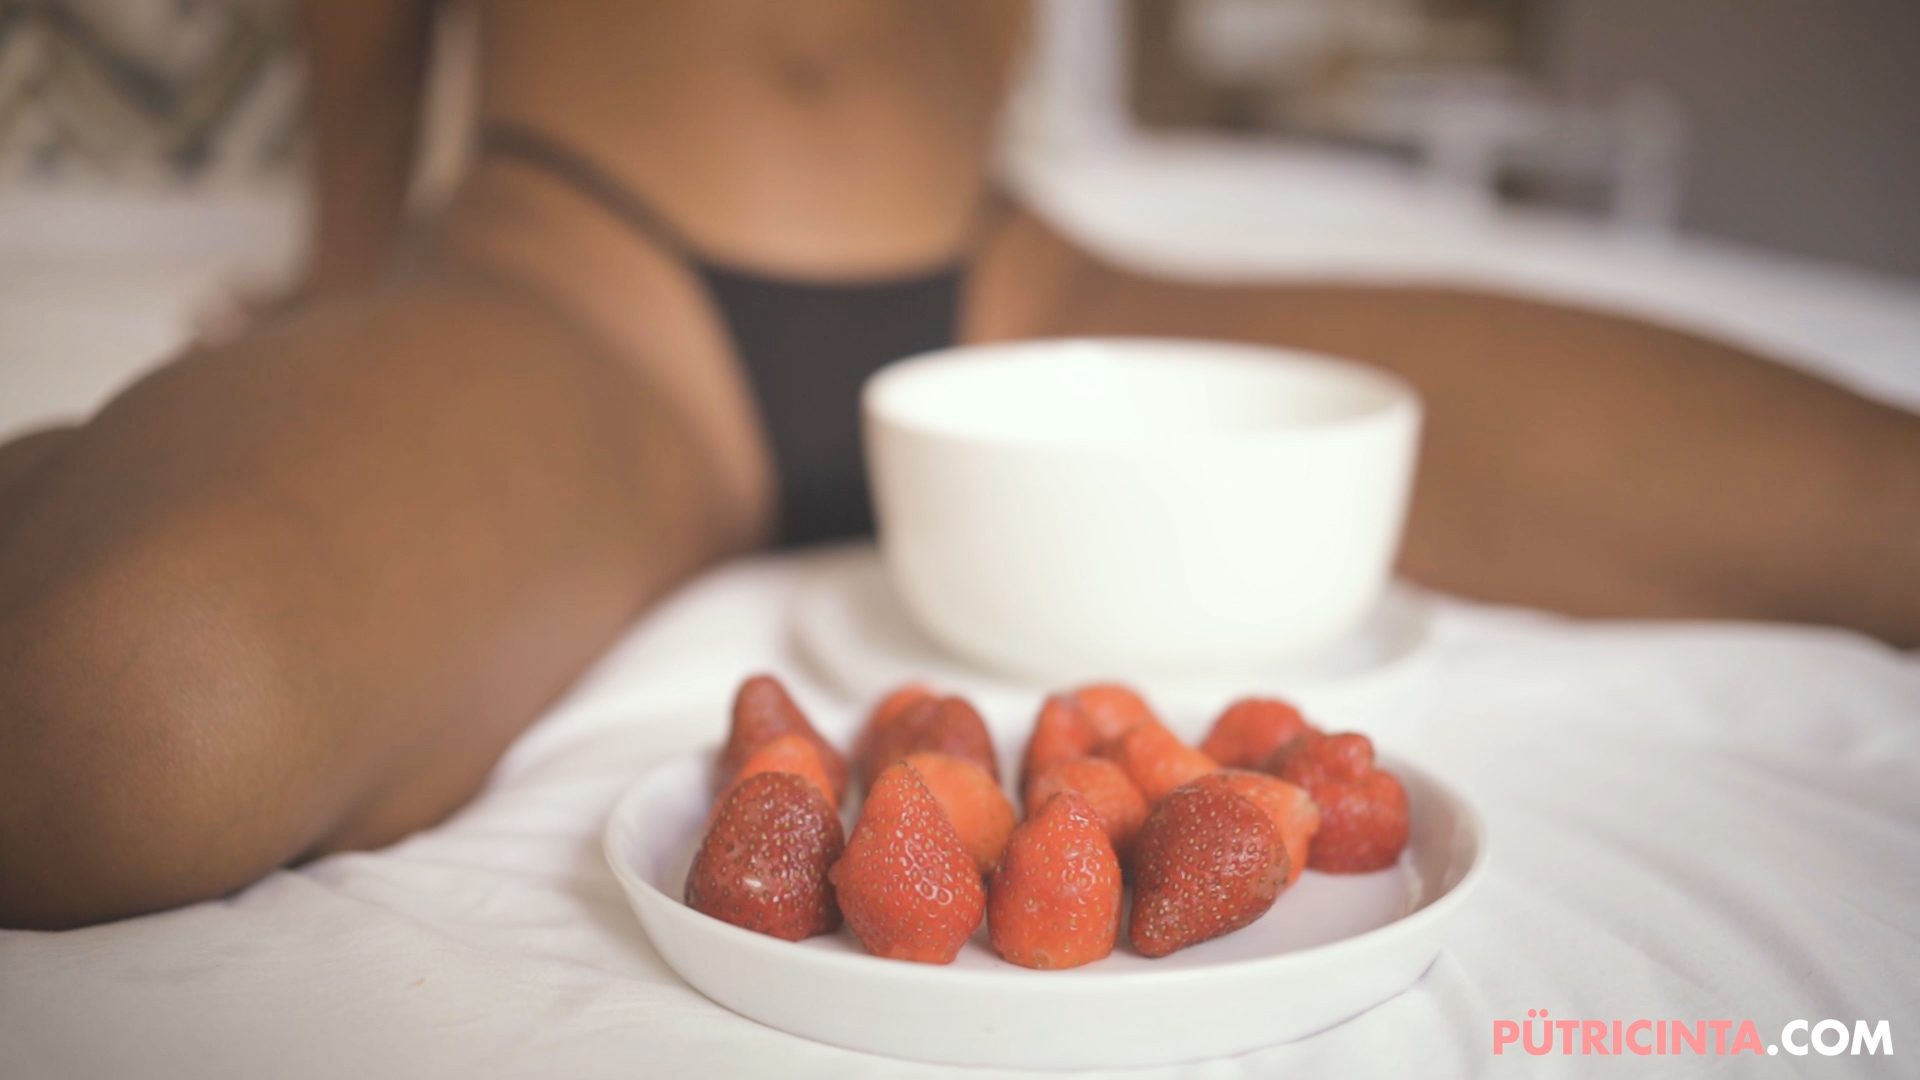 018-Strawberries-in-bed-stills-43.jpg